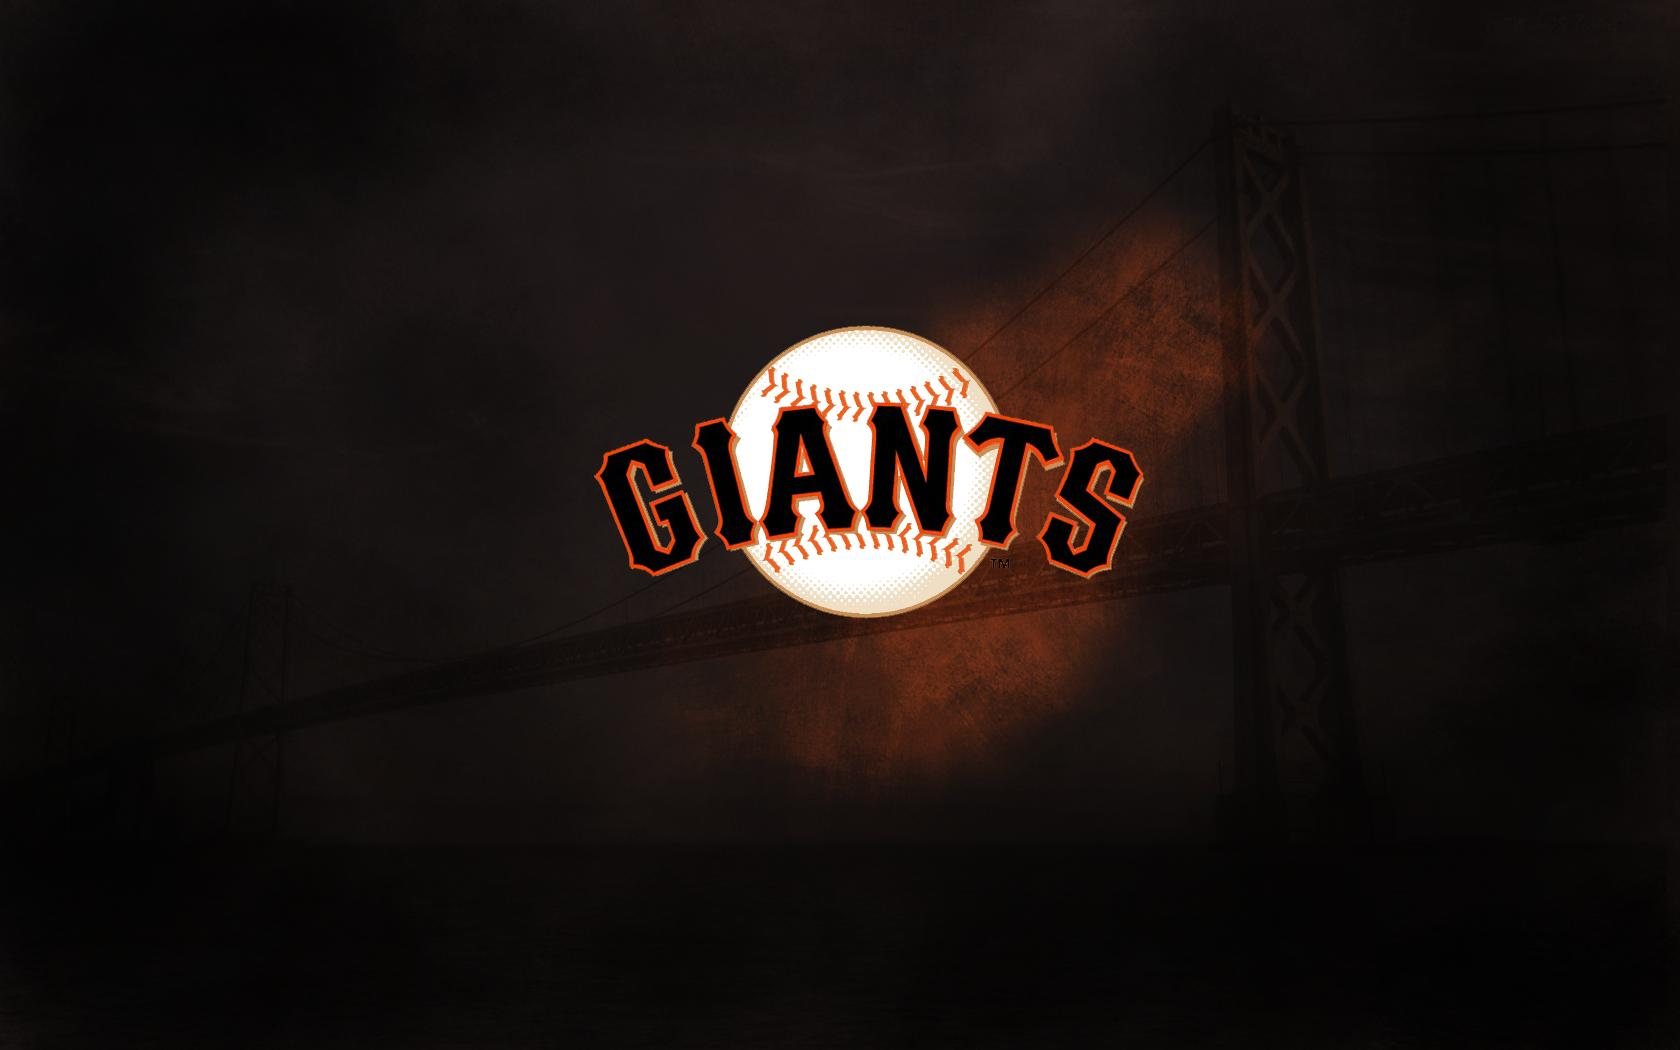 San Francisco Giants Wallpapers